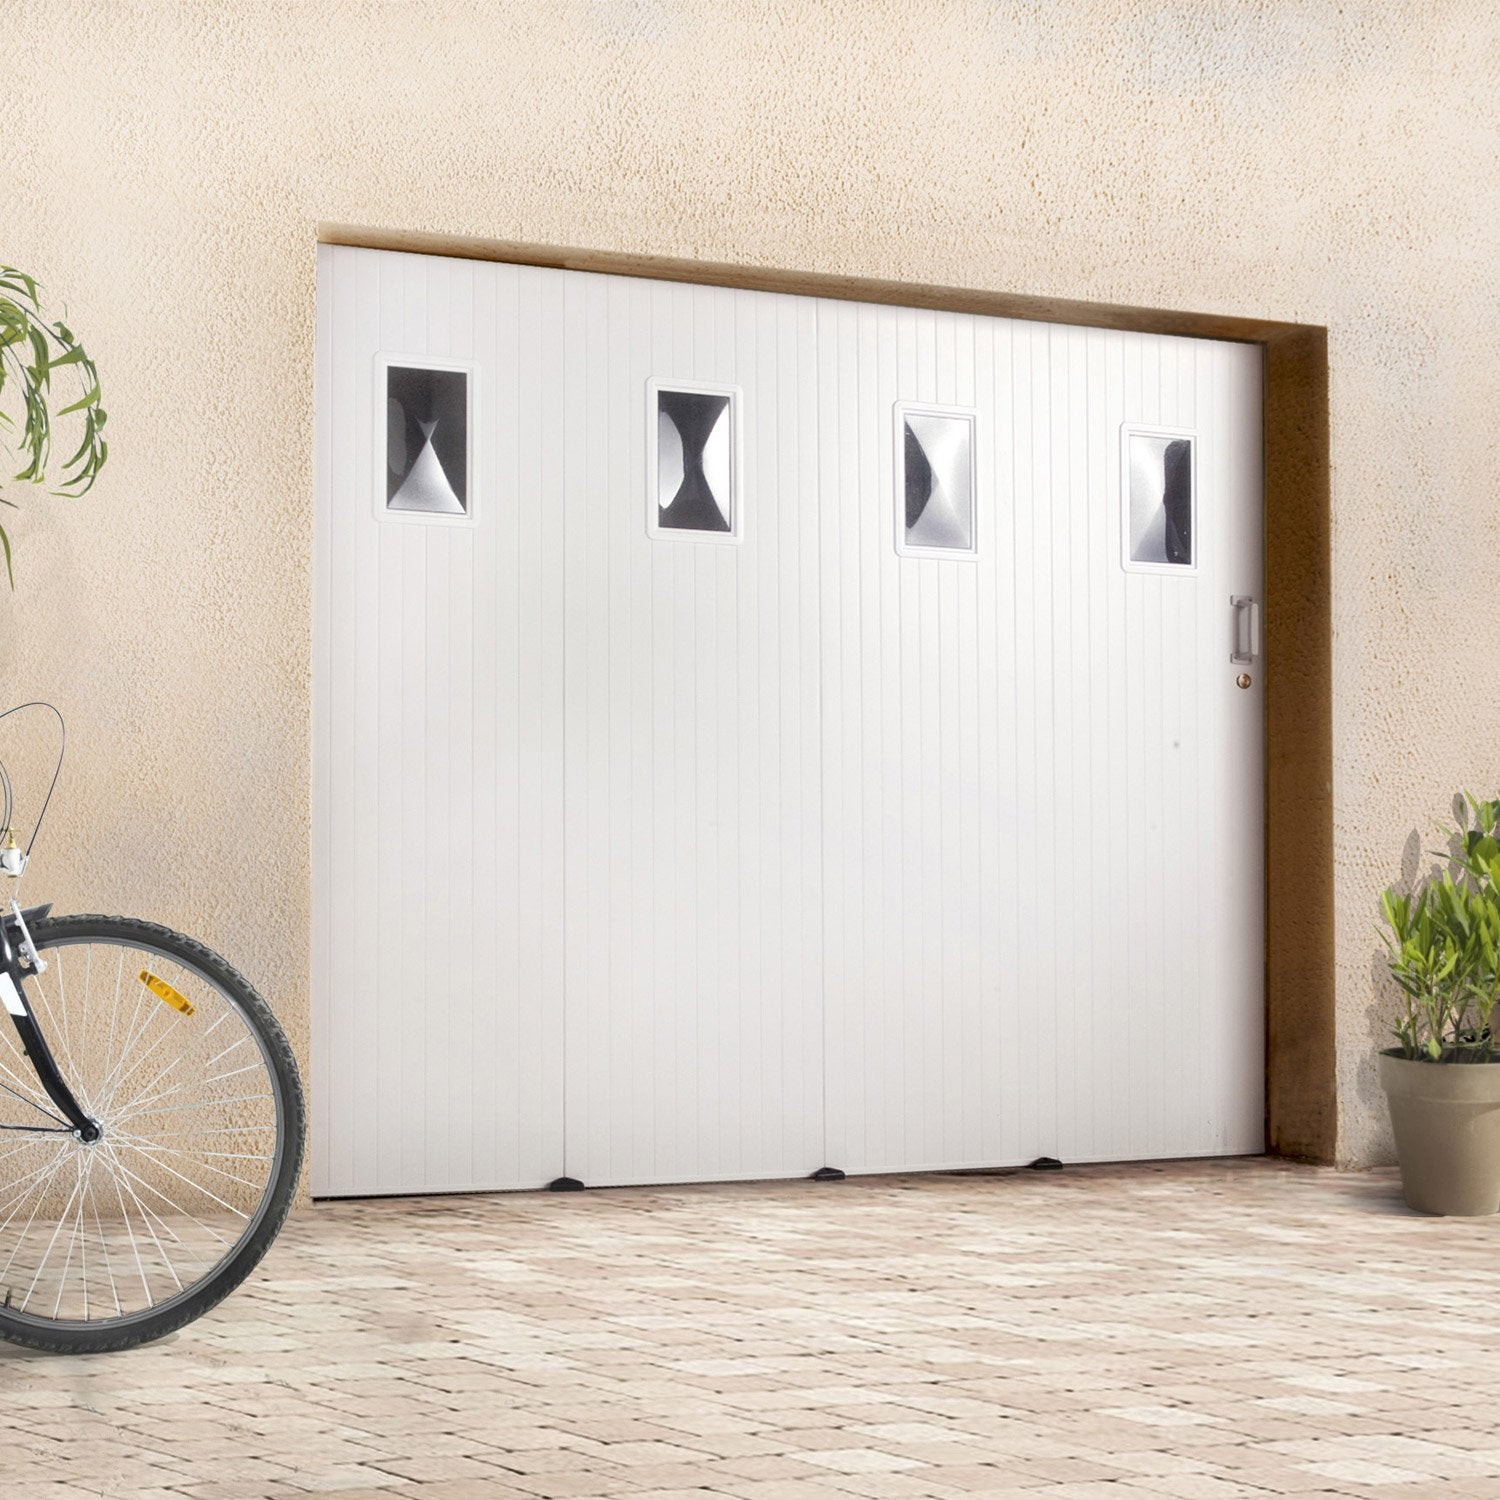 Pose d 39 une porte de garage coulissante leroy merlin for Leroy merlin porte garage sur mesure